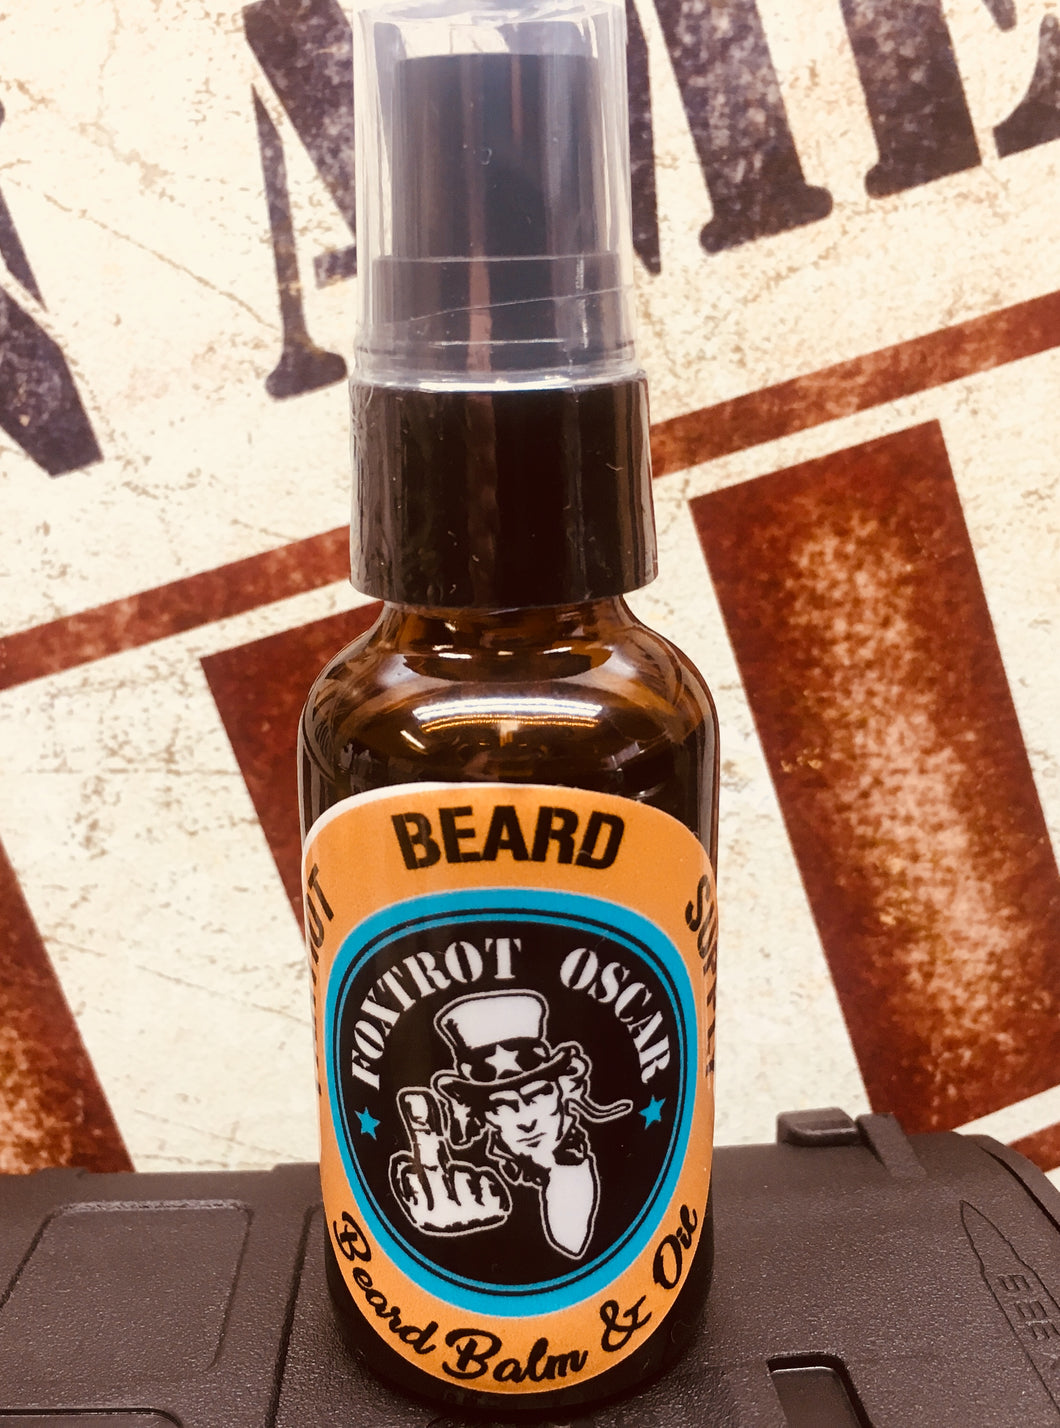 Foxtrot Oscar Beard Oil